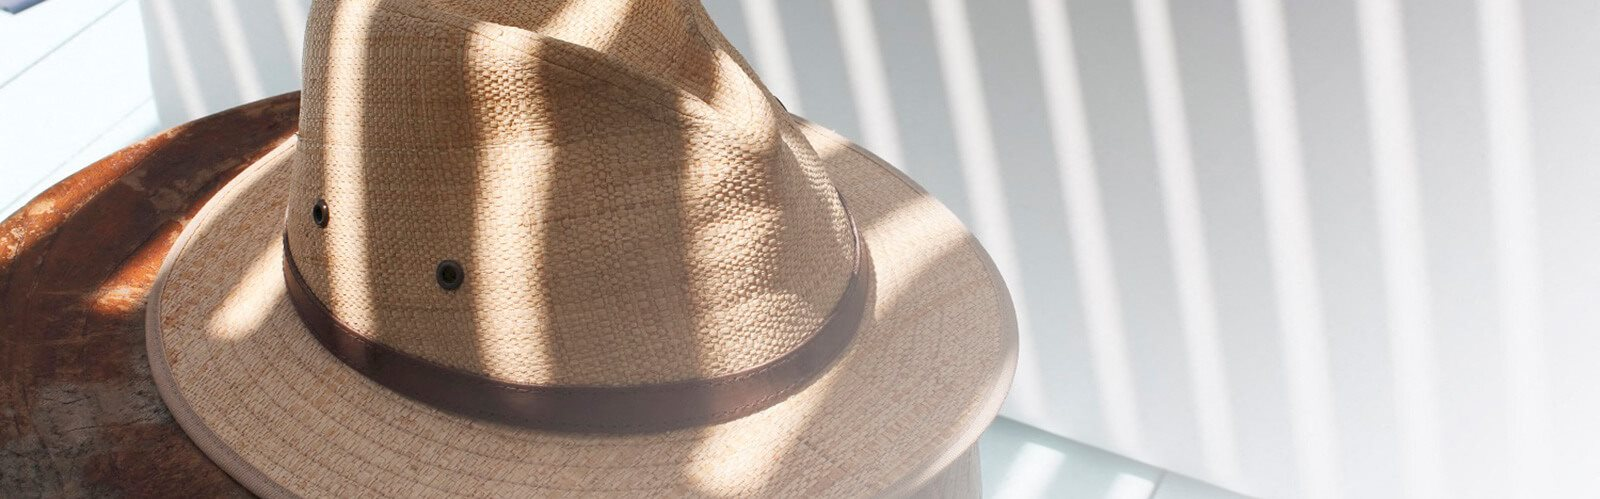 Beach Hat with Fence Lifestyle Image for Casa Brera at Toscana Isle Apartments, Lake Worth, FL 33463